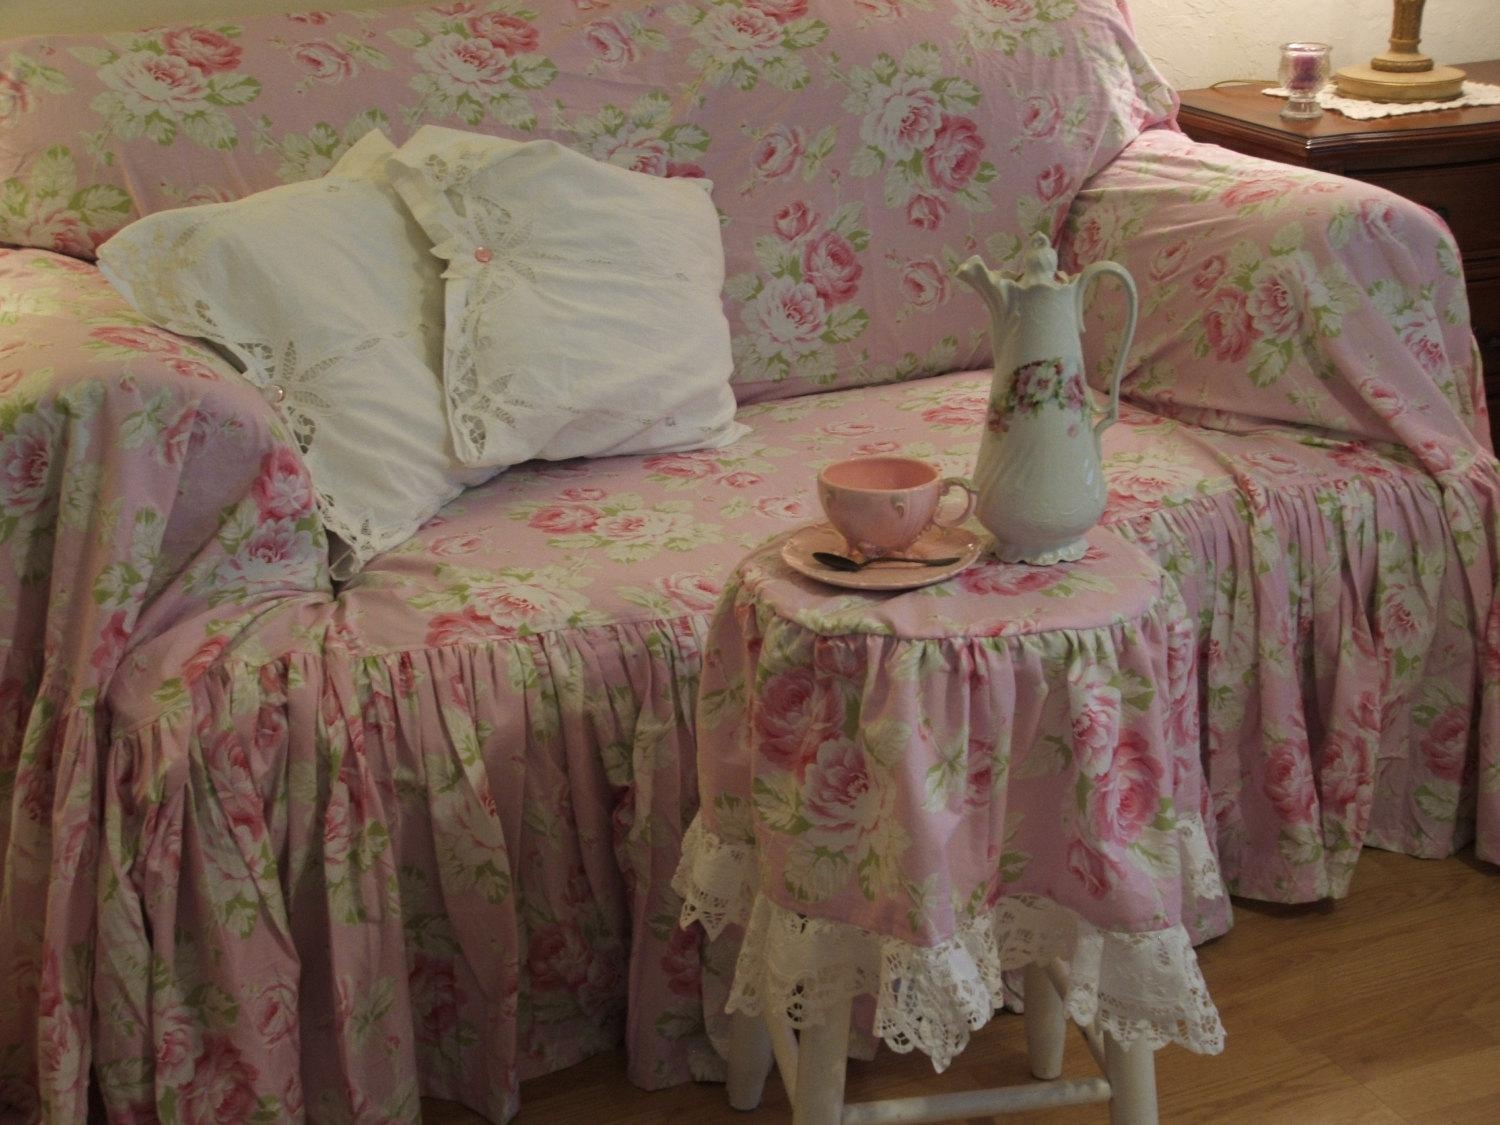 Sofa Shabby Chic 20 Top Shabby Slipcovers Sofa Ideas